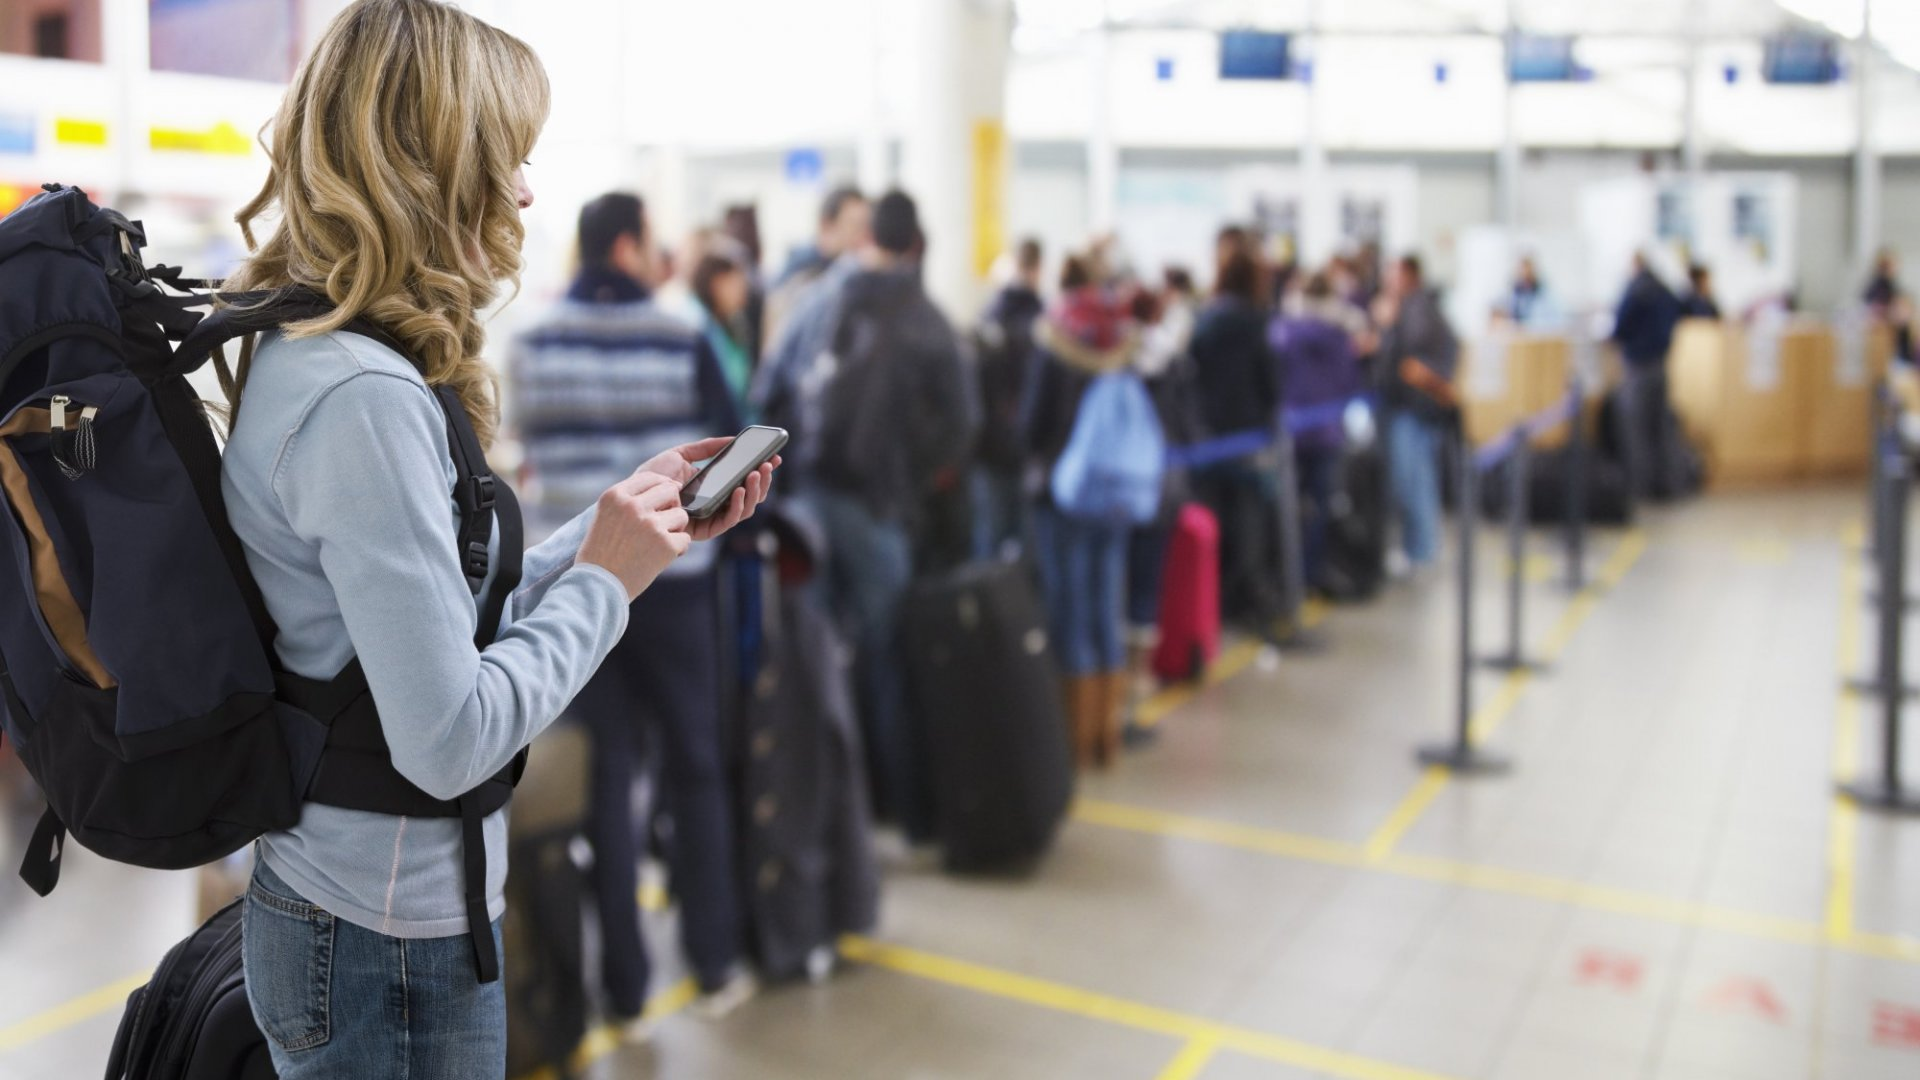 6 Things You Need to Know About Air Travel This Thanksgiving